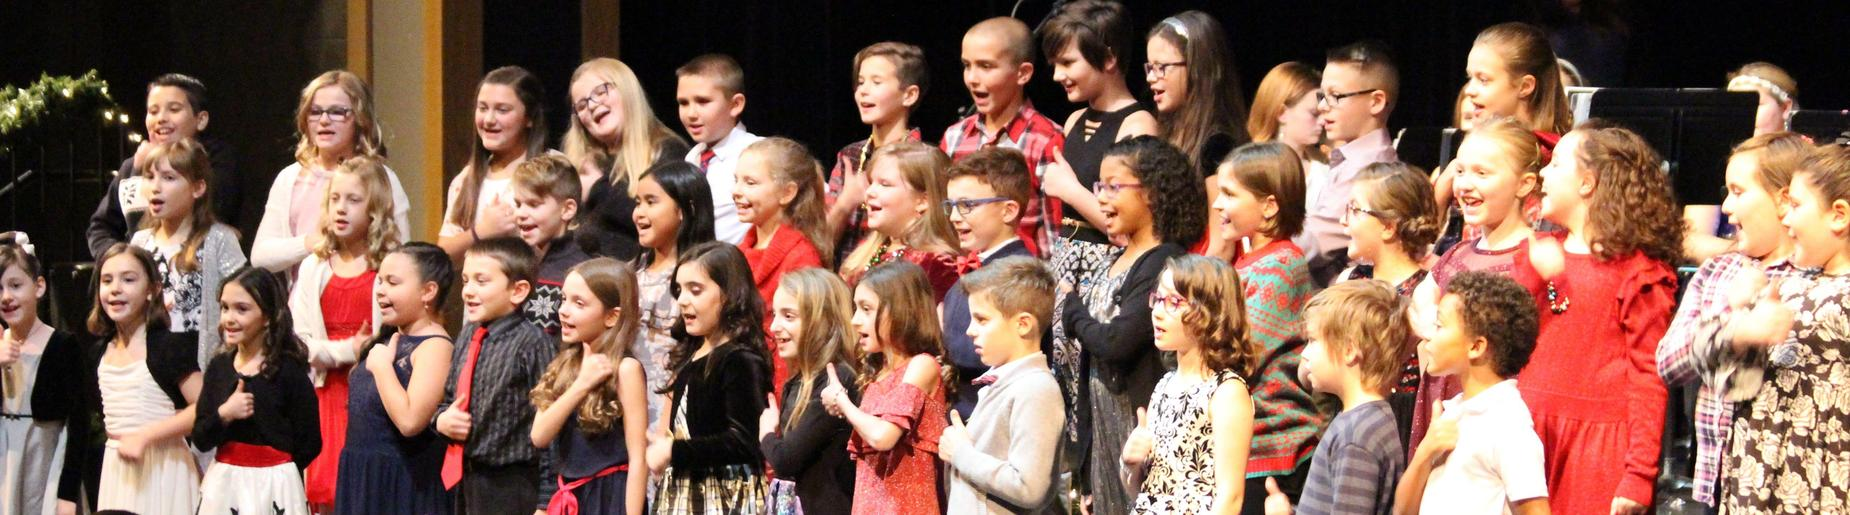 Richard Mann Elementary 4th grade chorus sings a holiday favorite at the winter concert.